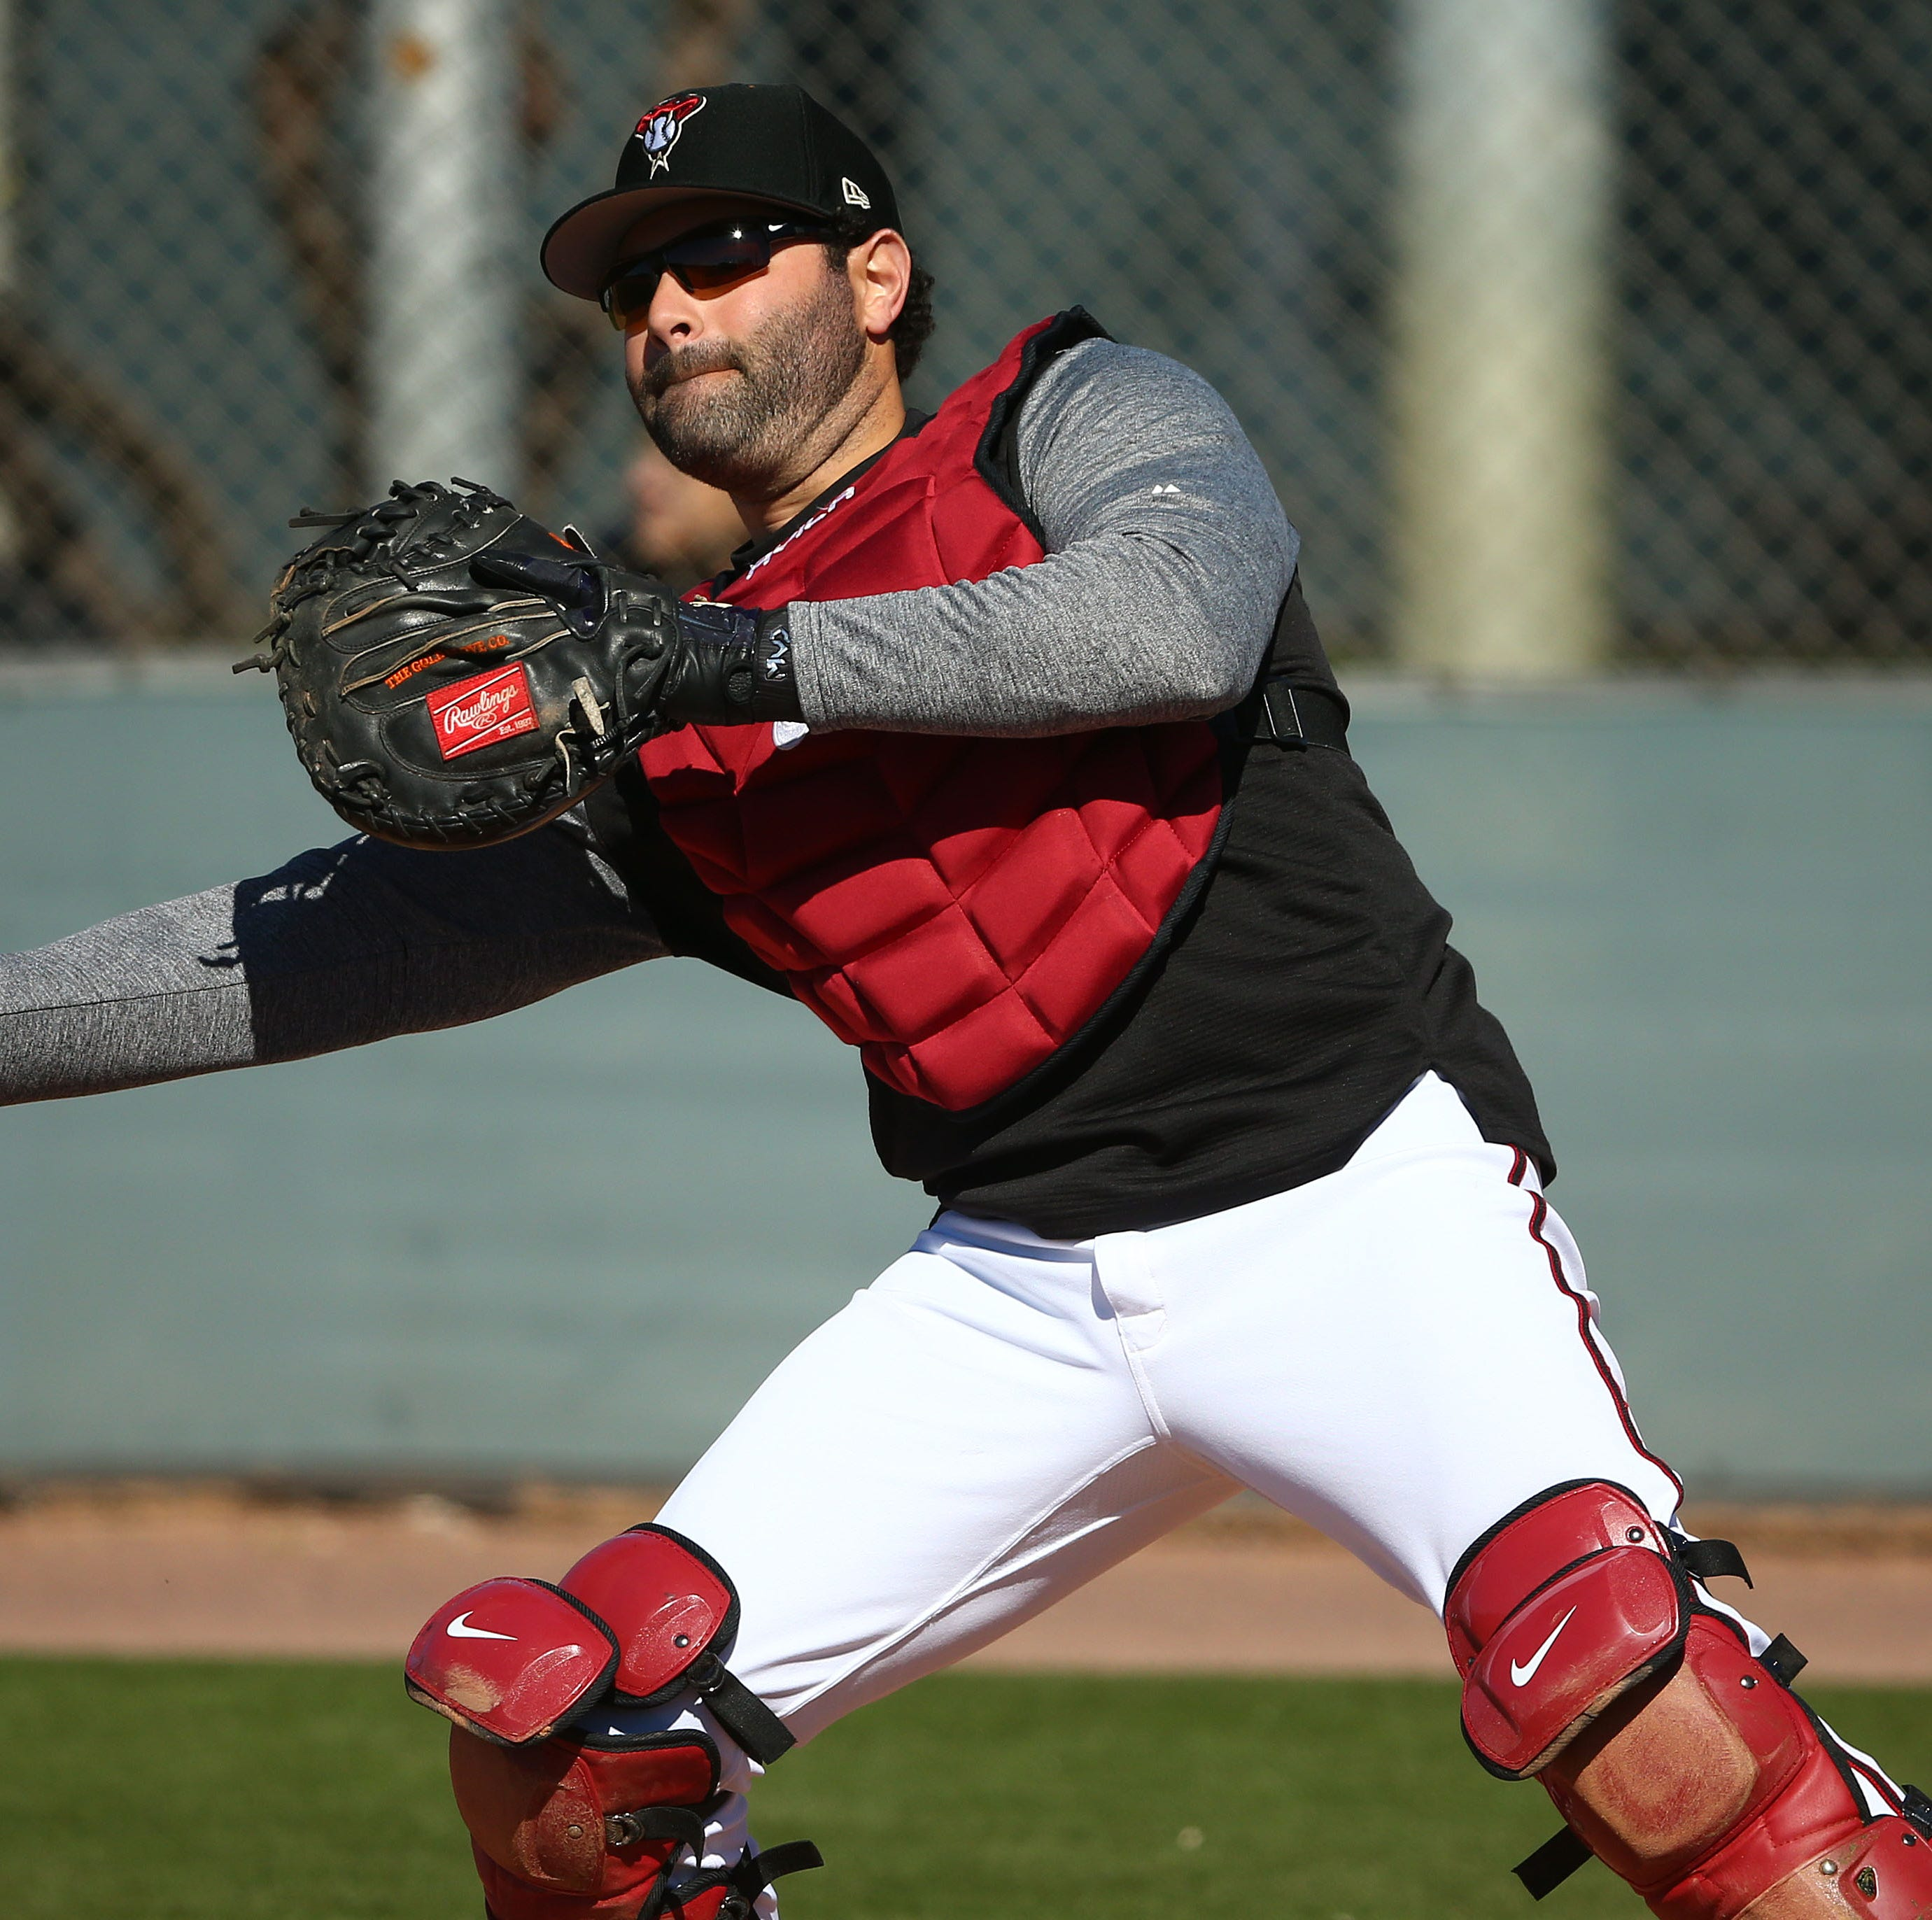 Catch this: Arizona Diamondbacks might move away from 3-catcher system